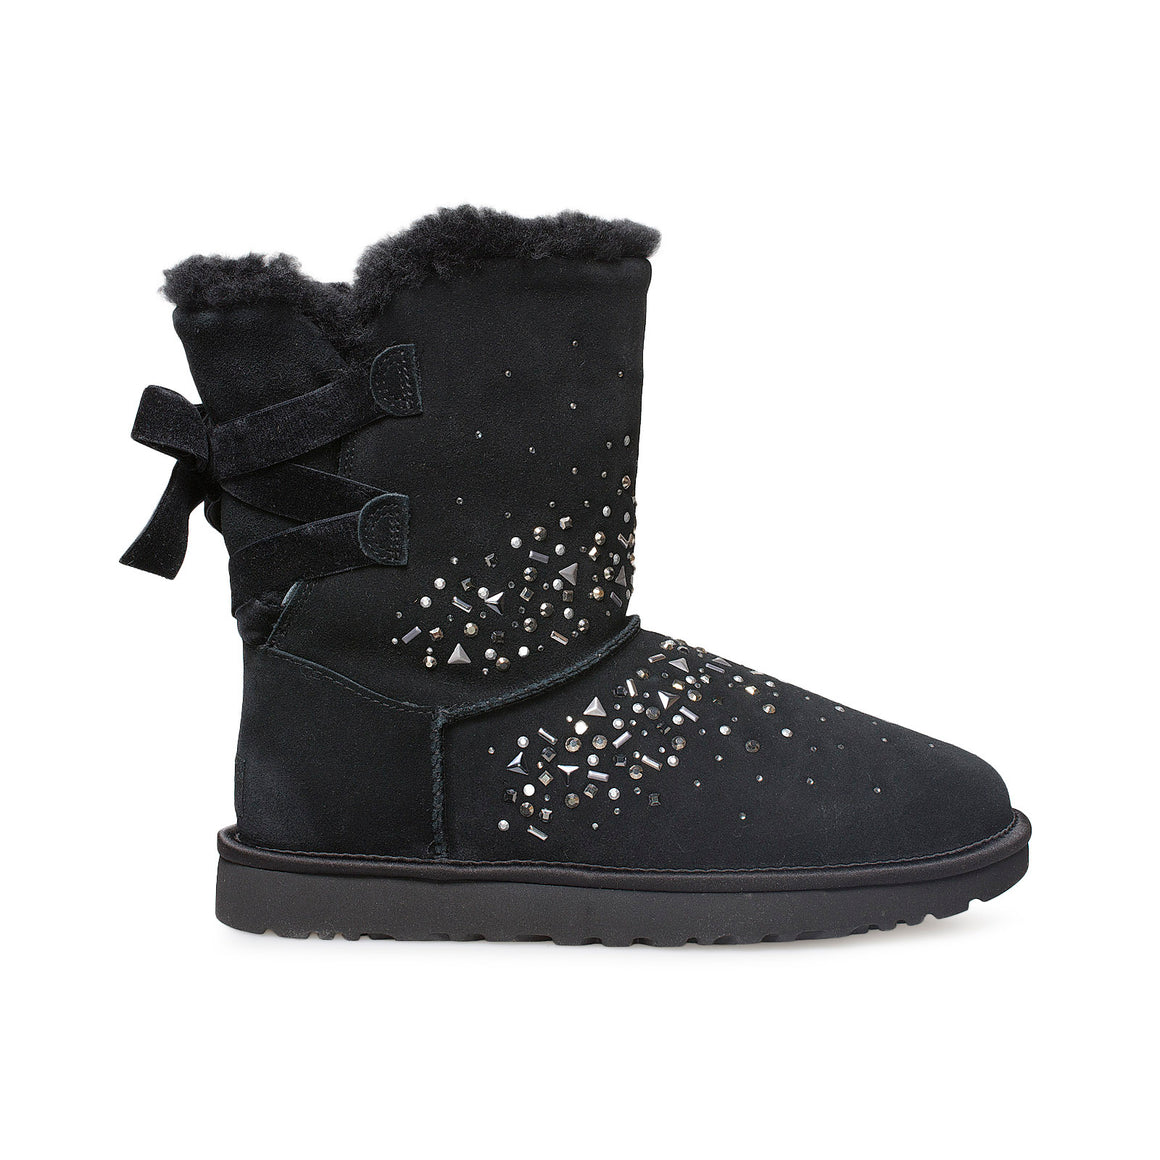 UGG Classic Galaxy Bling Short Black Boots - Women's